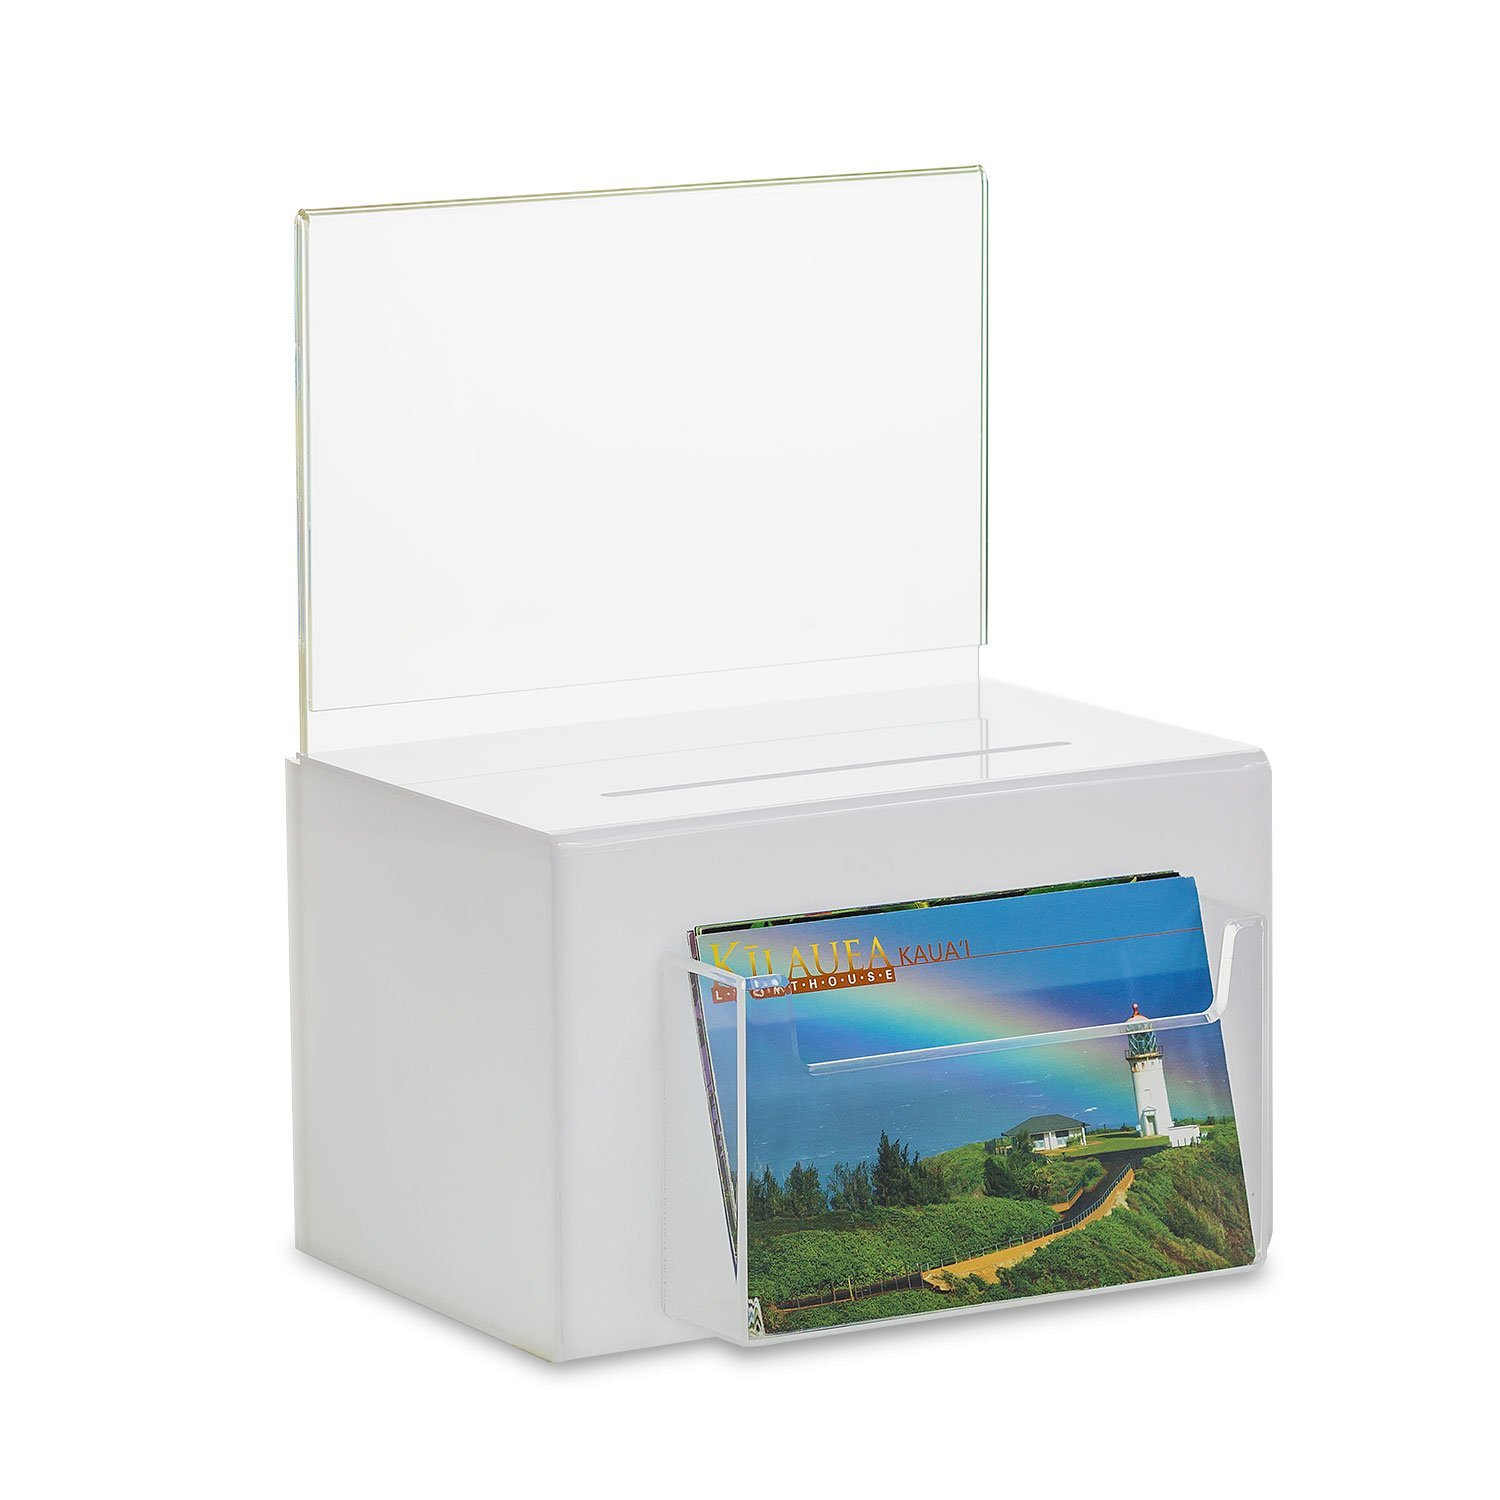 SourceOne Large Oblong Donation Box W/ 8 1/2 x 11 Sign Holder (White w/Pocket) by SOURCEONE.ORG